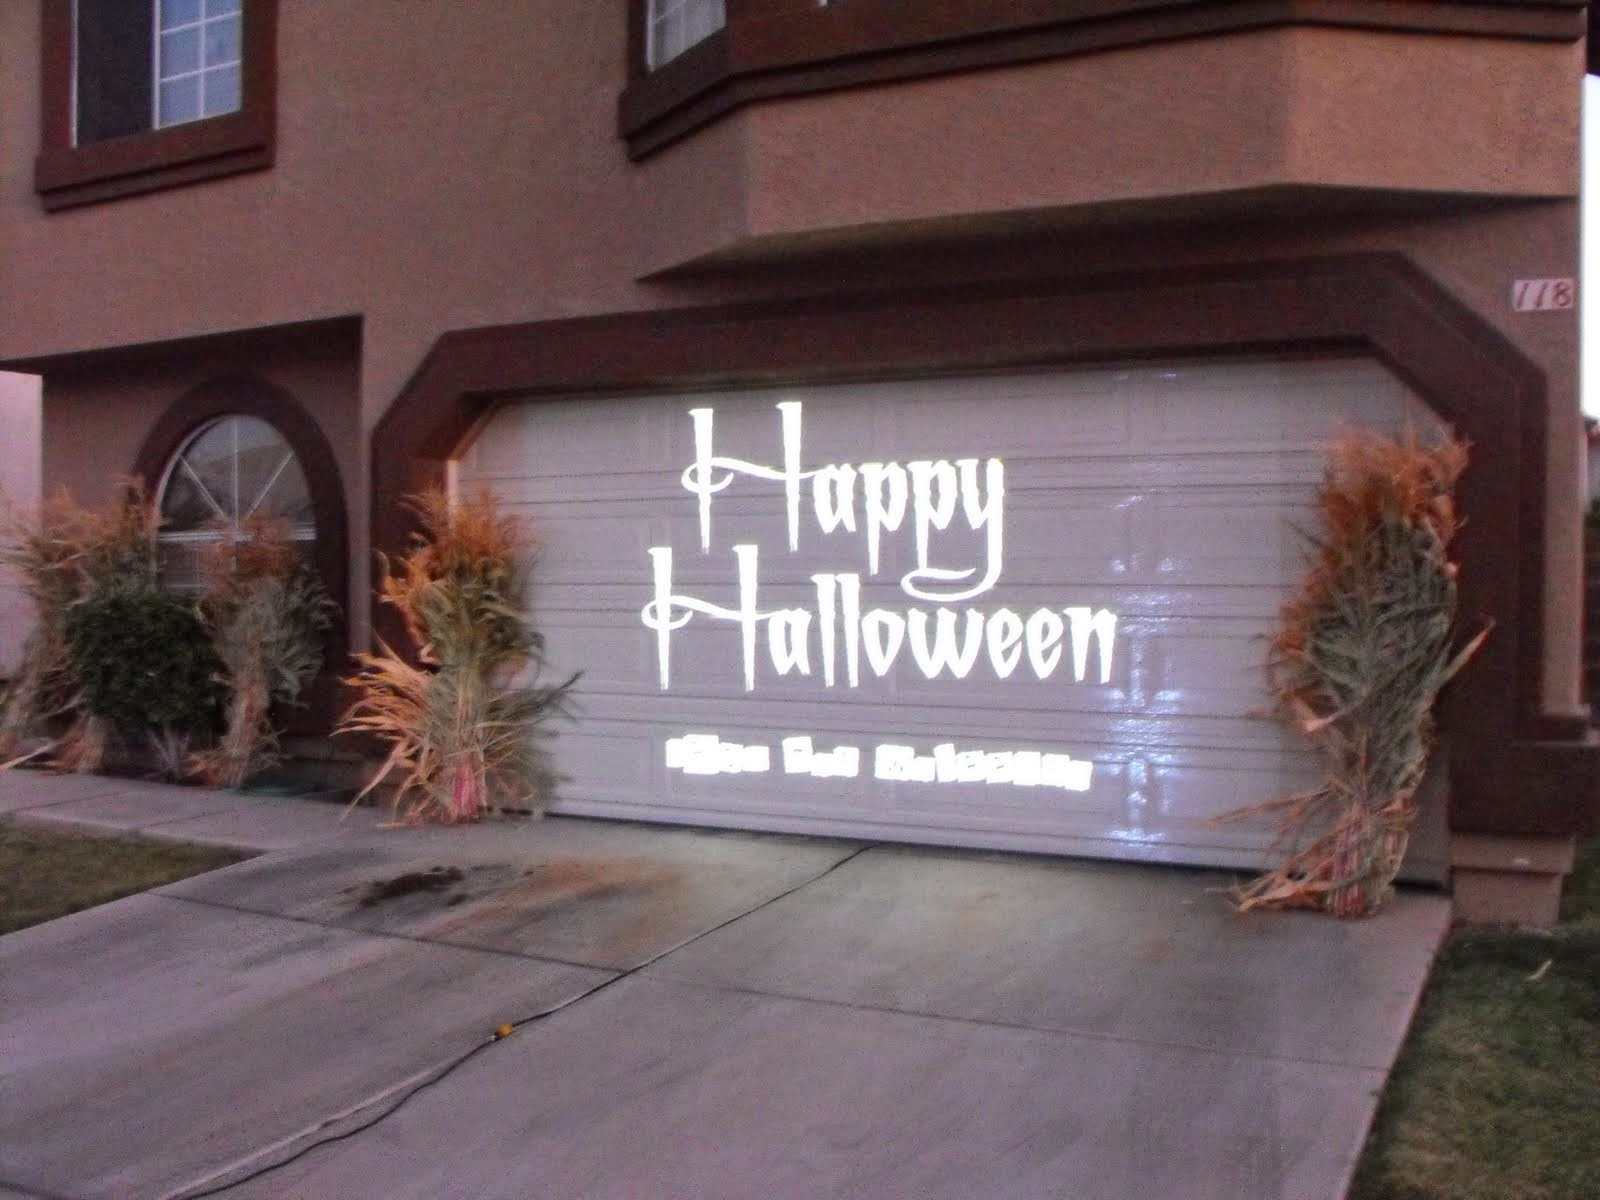 Halloween garage door covers - No Matter What Decorations You Choose This Halloween We Hope You Have A Fun And Safe Time Just Remember When It Comes To Replacing Your Doors